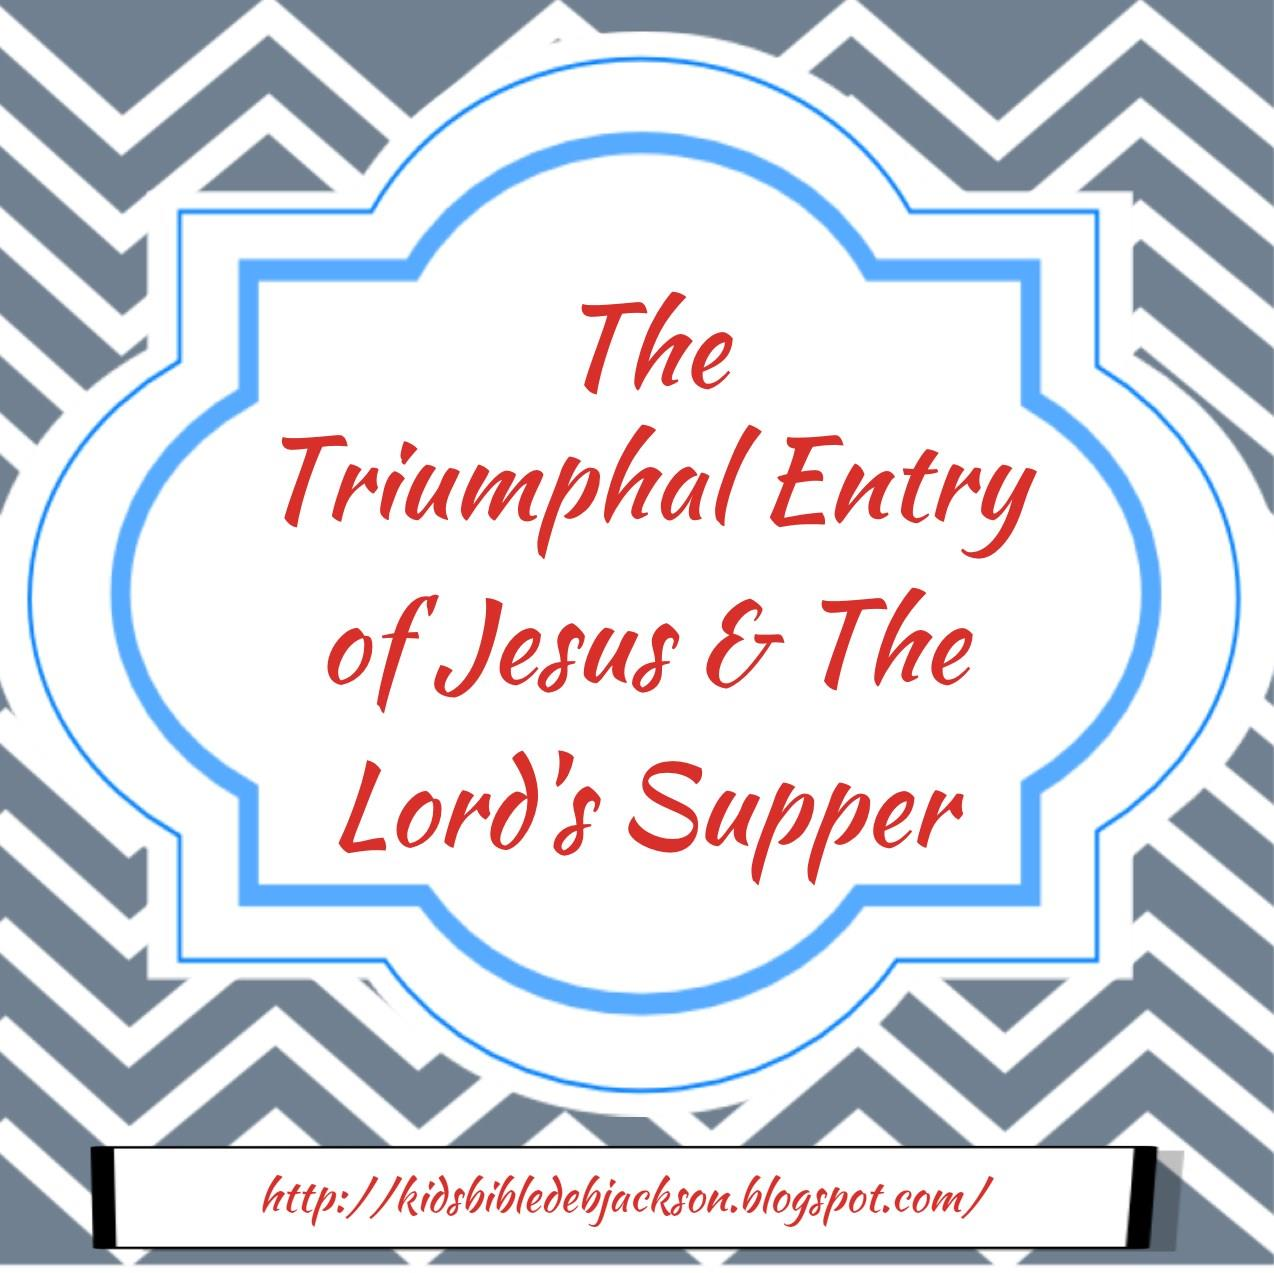 http://kidsbibledebjackson.blogspot.com/2014/10/the-triumphal-entry-of-jesus-lords.html